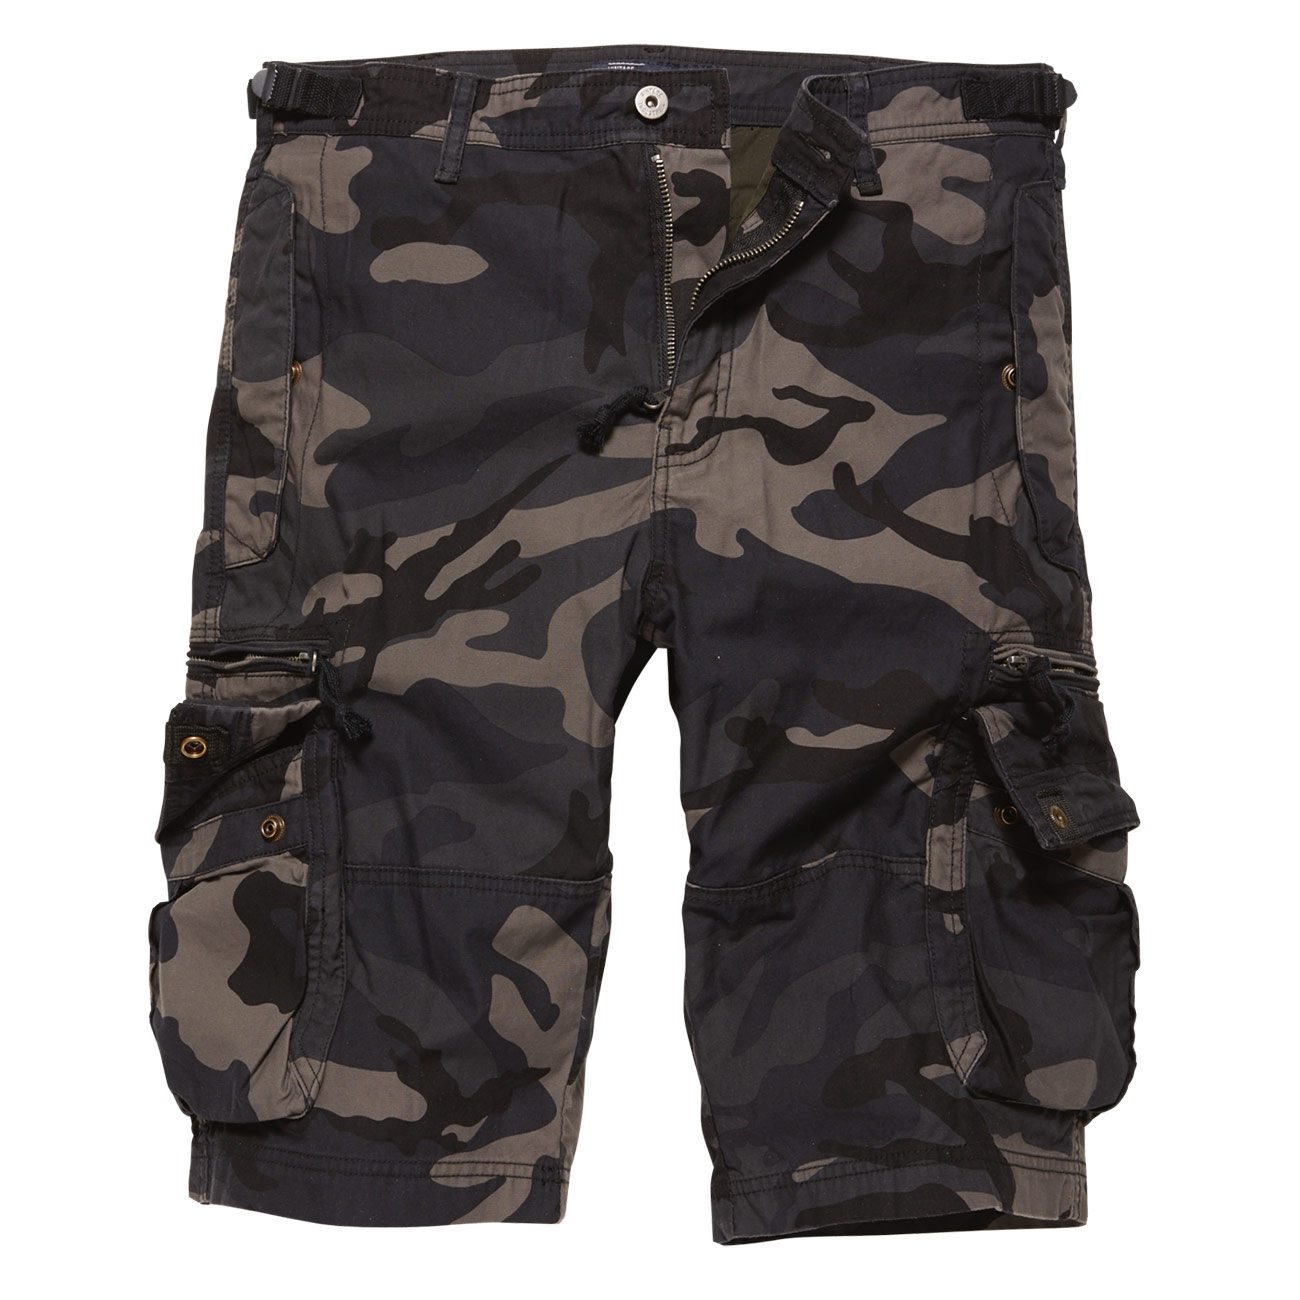 Vintage Industries Shorts Gandor darkcamo 0